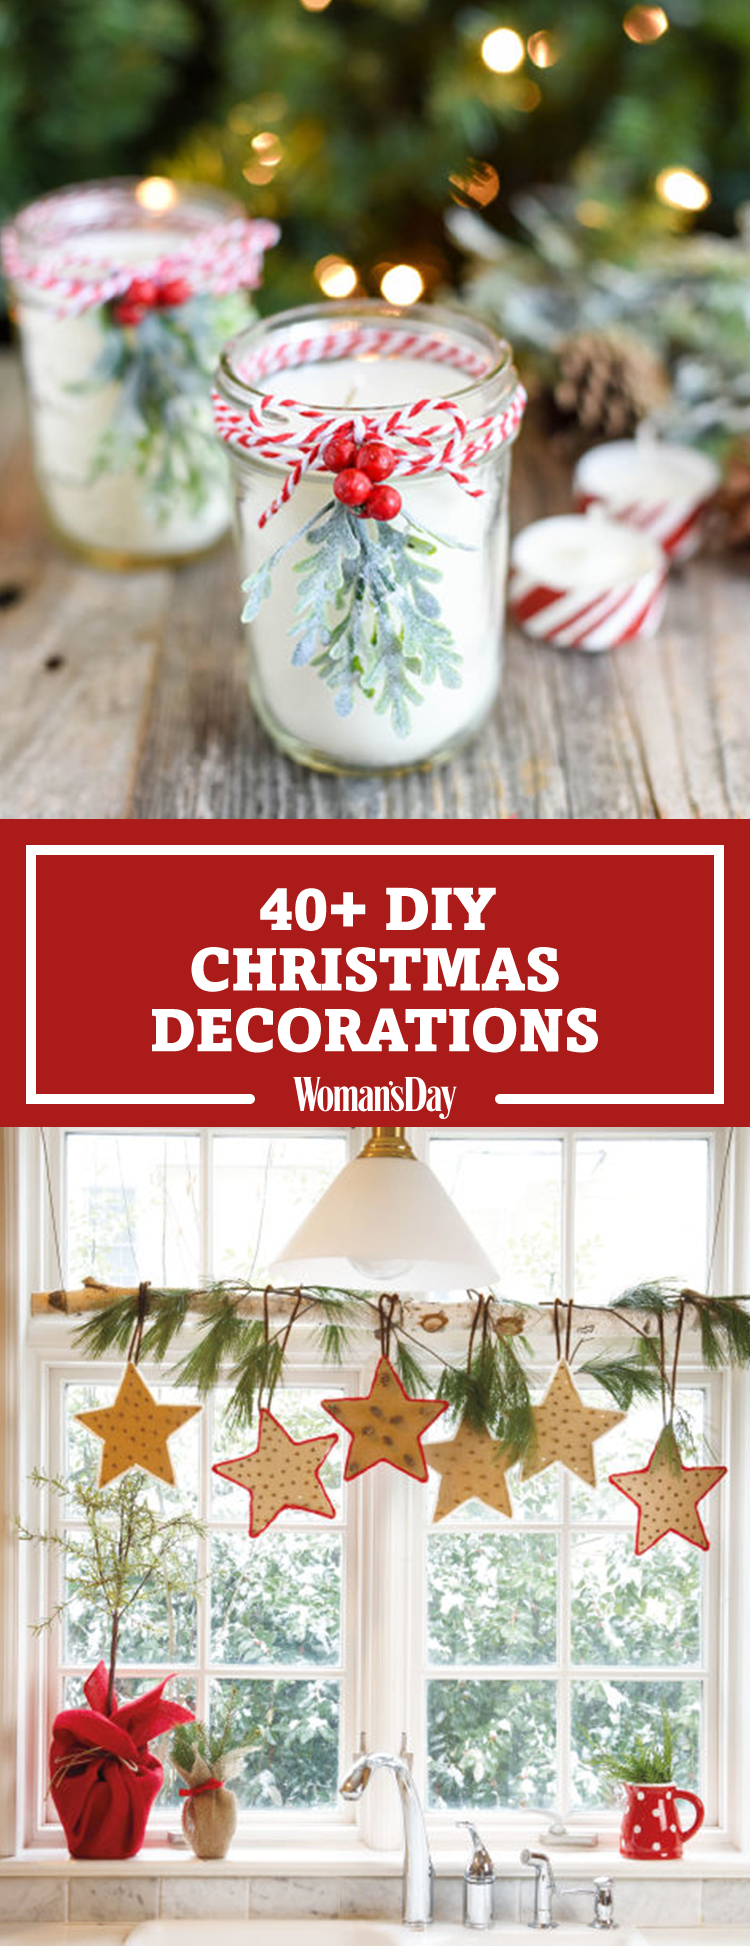 Easy diy christmas decorations homemade ideas for